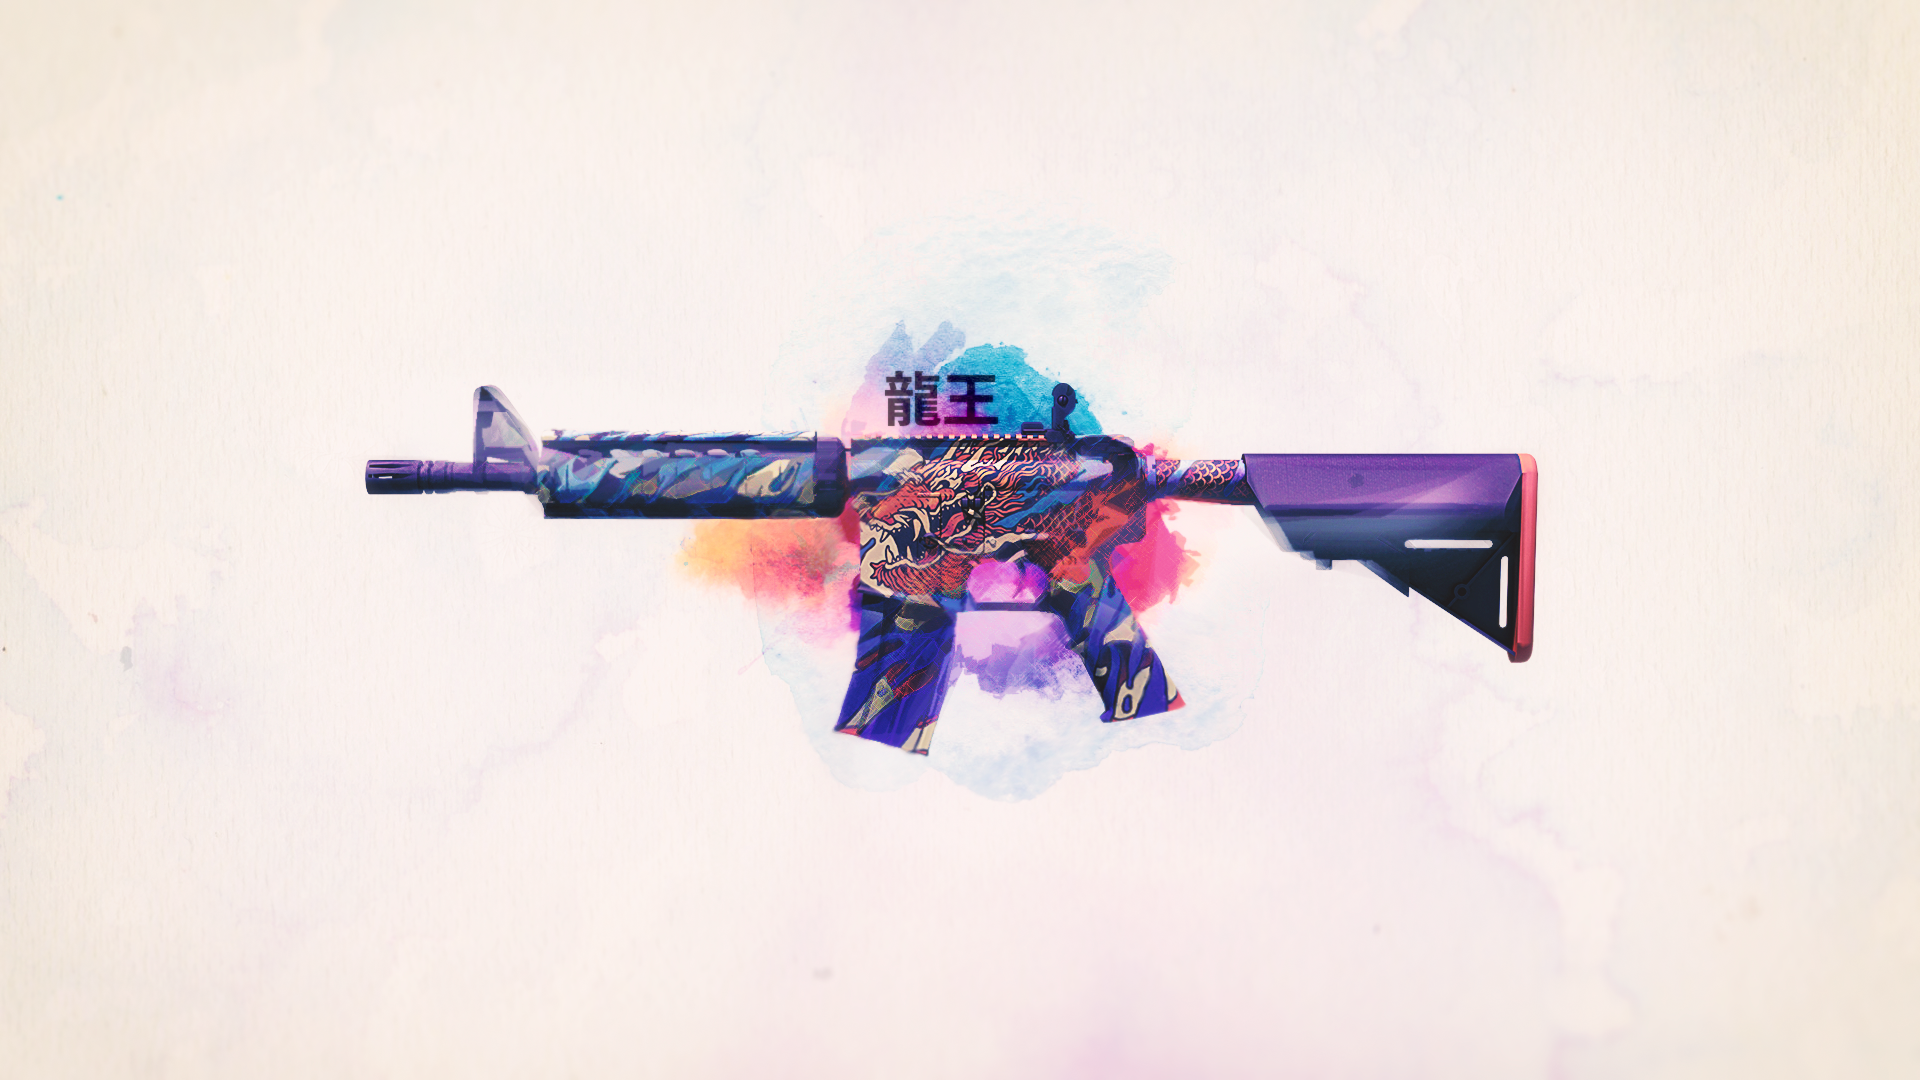 M4A4 Dragon King Full HD Wallpaper And Background Image